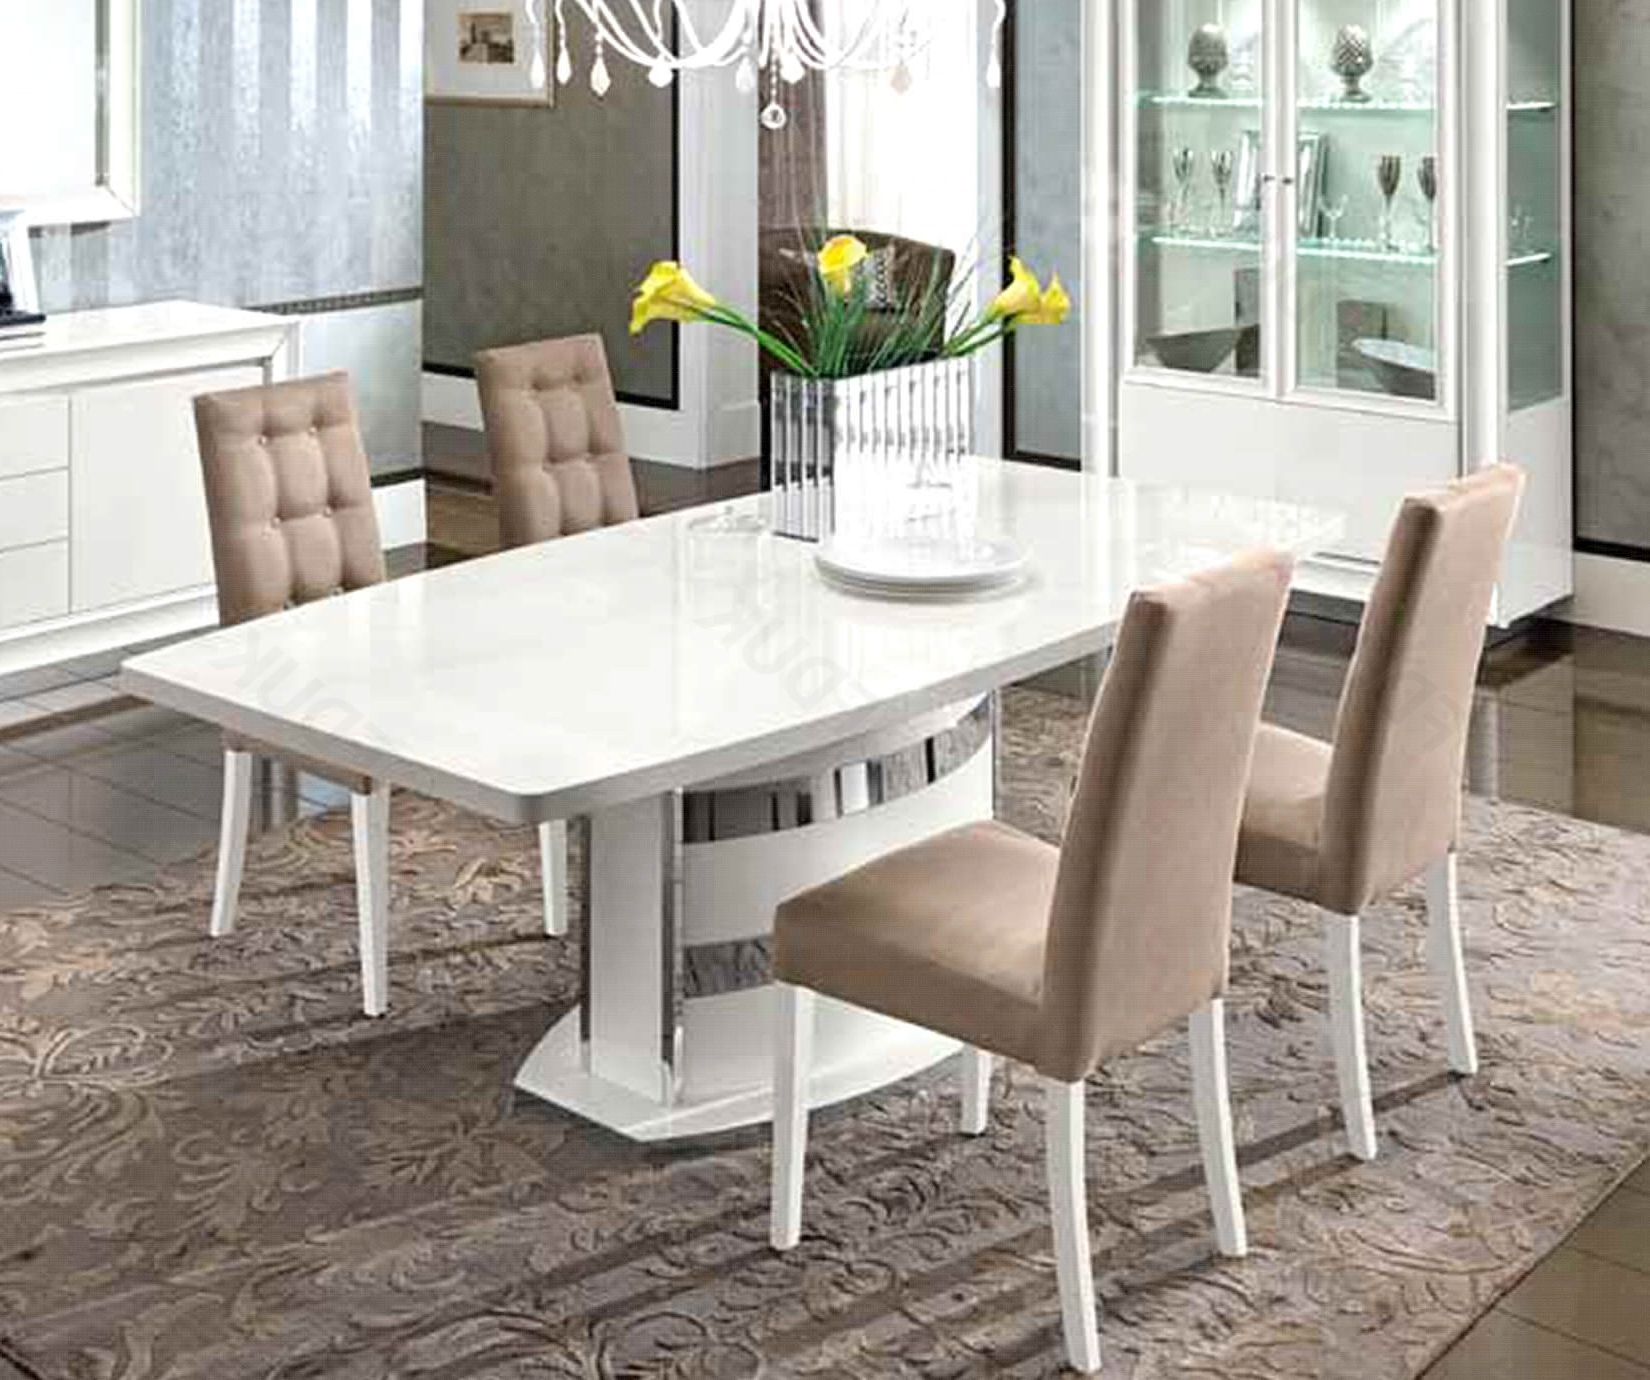 Recent Camel Group Dama Bianca White High Gloss Extending Dining Table Only Fduk  Best Price Guarantee We Will Beat Our Competitors Price! Give Our Sales  Team Throughout White Gloss Dining Room Furniture (View 7 of 25)